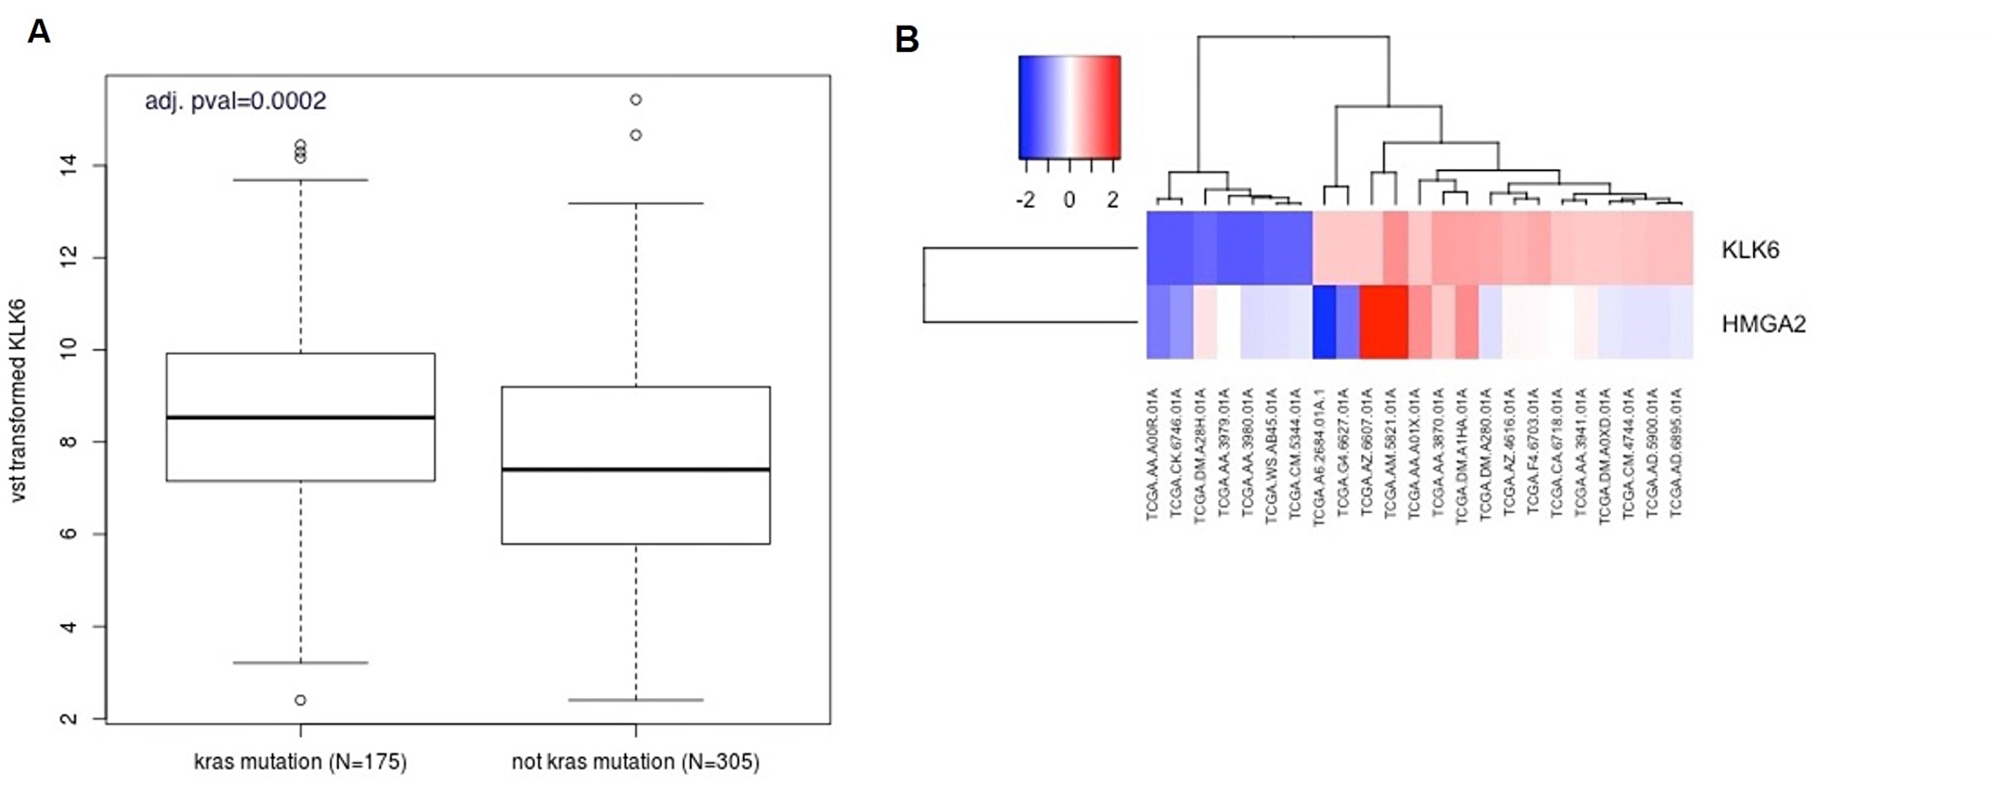 Bioinformatic analysis of KLK6 and HMGA2 expression in the CRC patients.